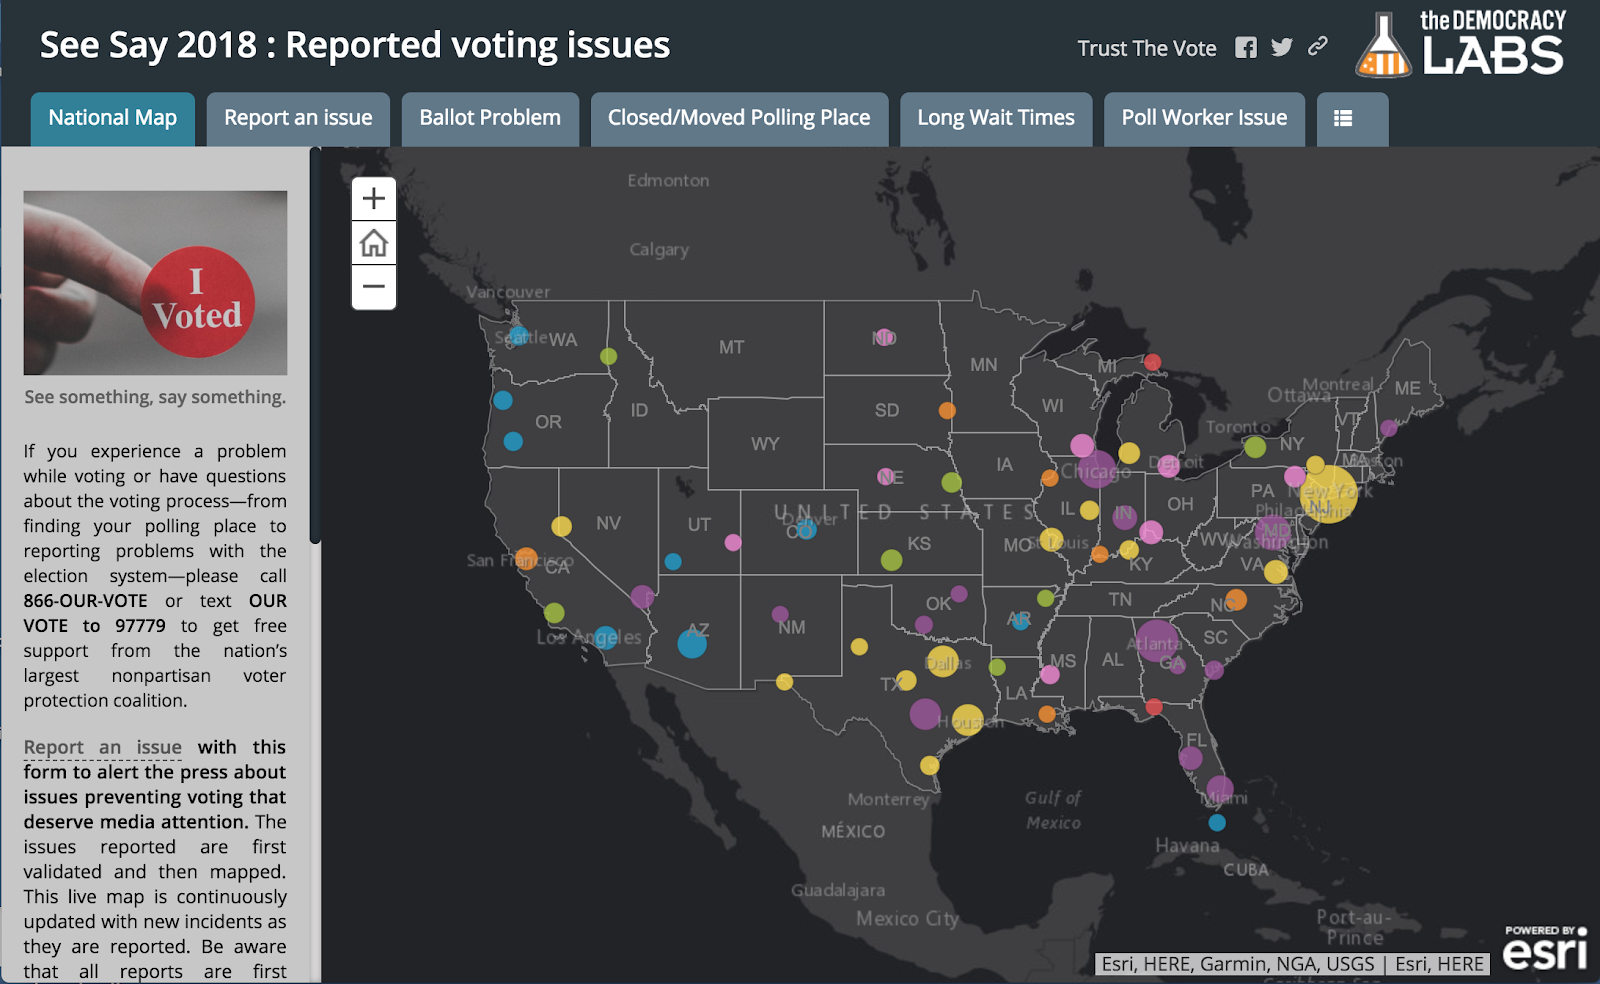 ArcGis Map showing voting issues